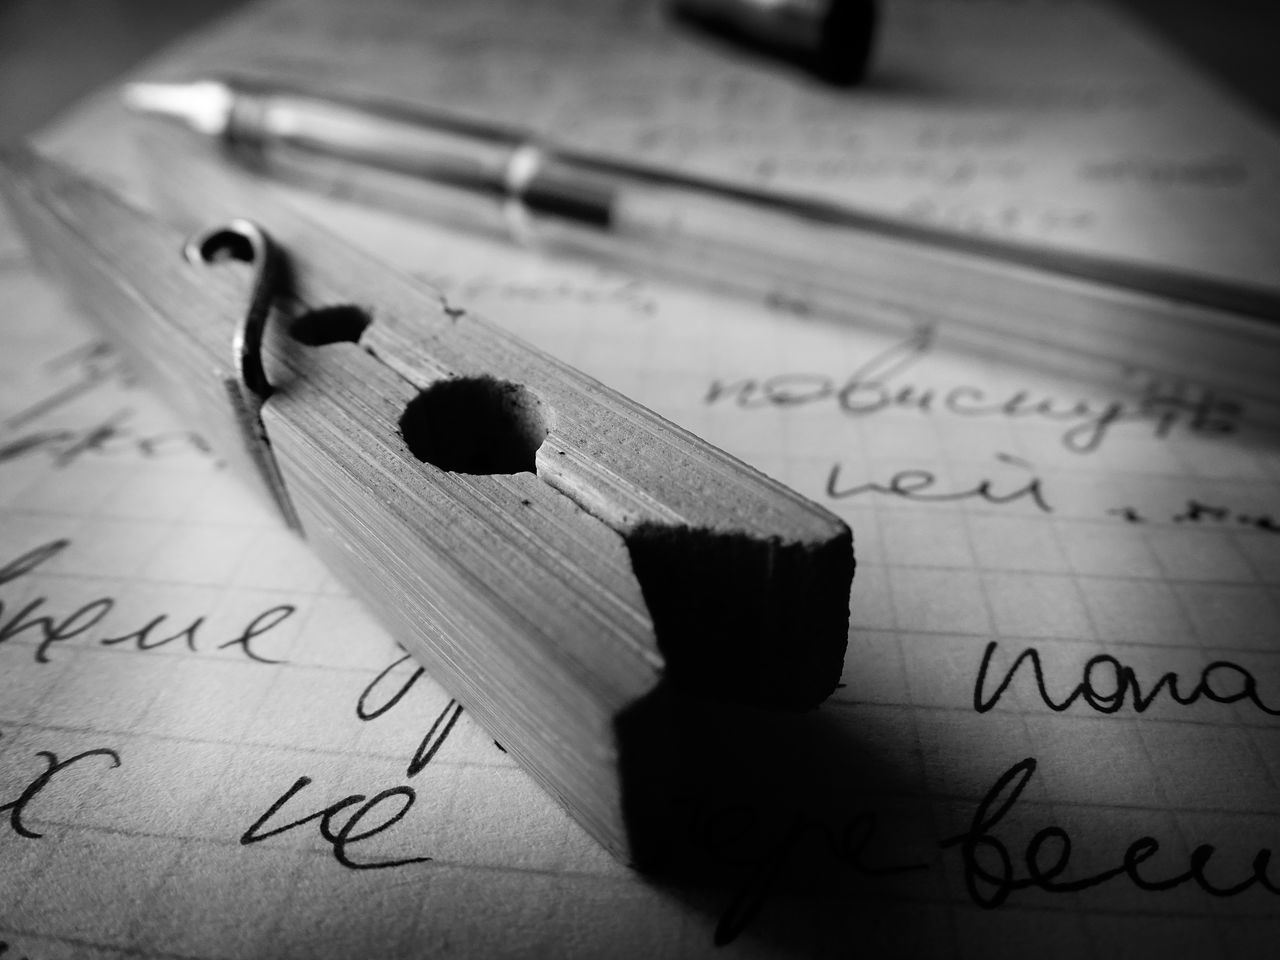 paper, still life, indoors, text, handwriting, close-up, education, no people, page, arts culture and entertainment, musical note, formula